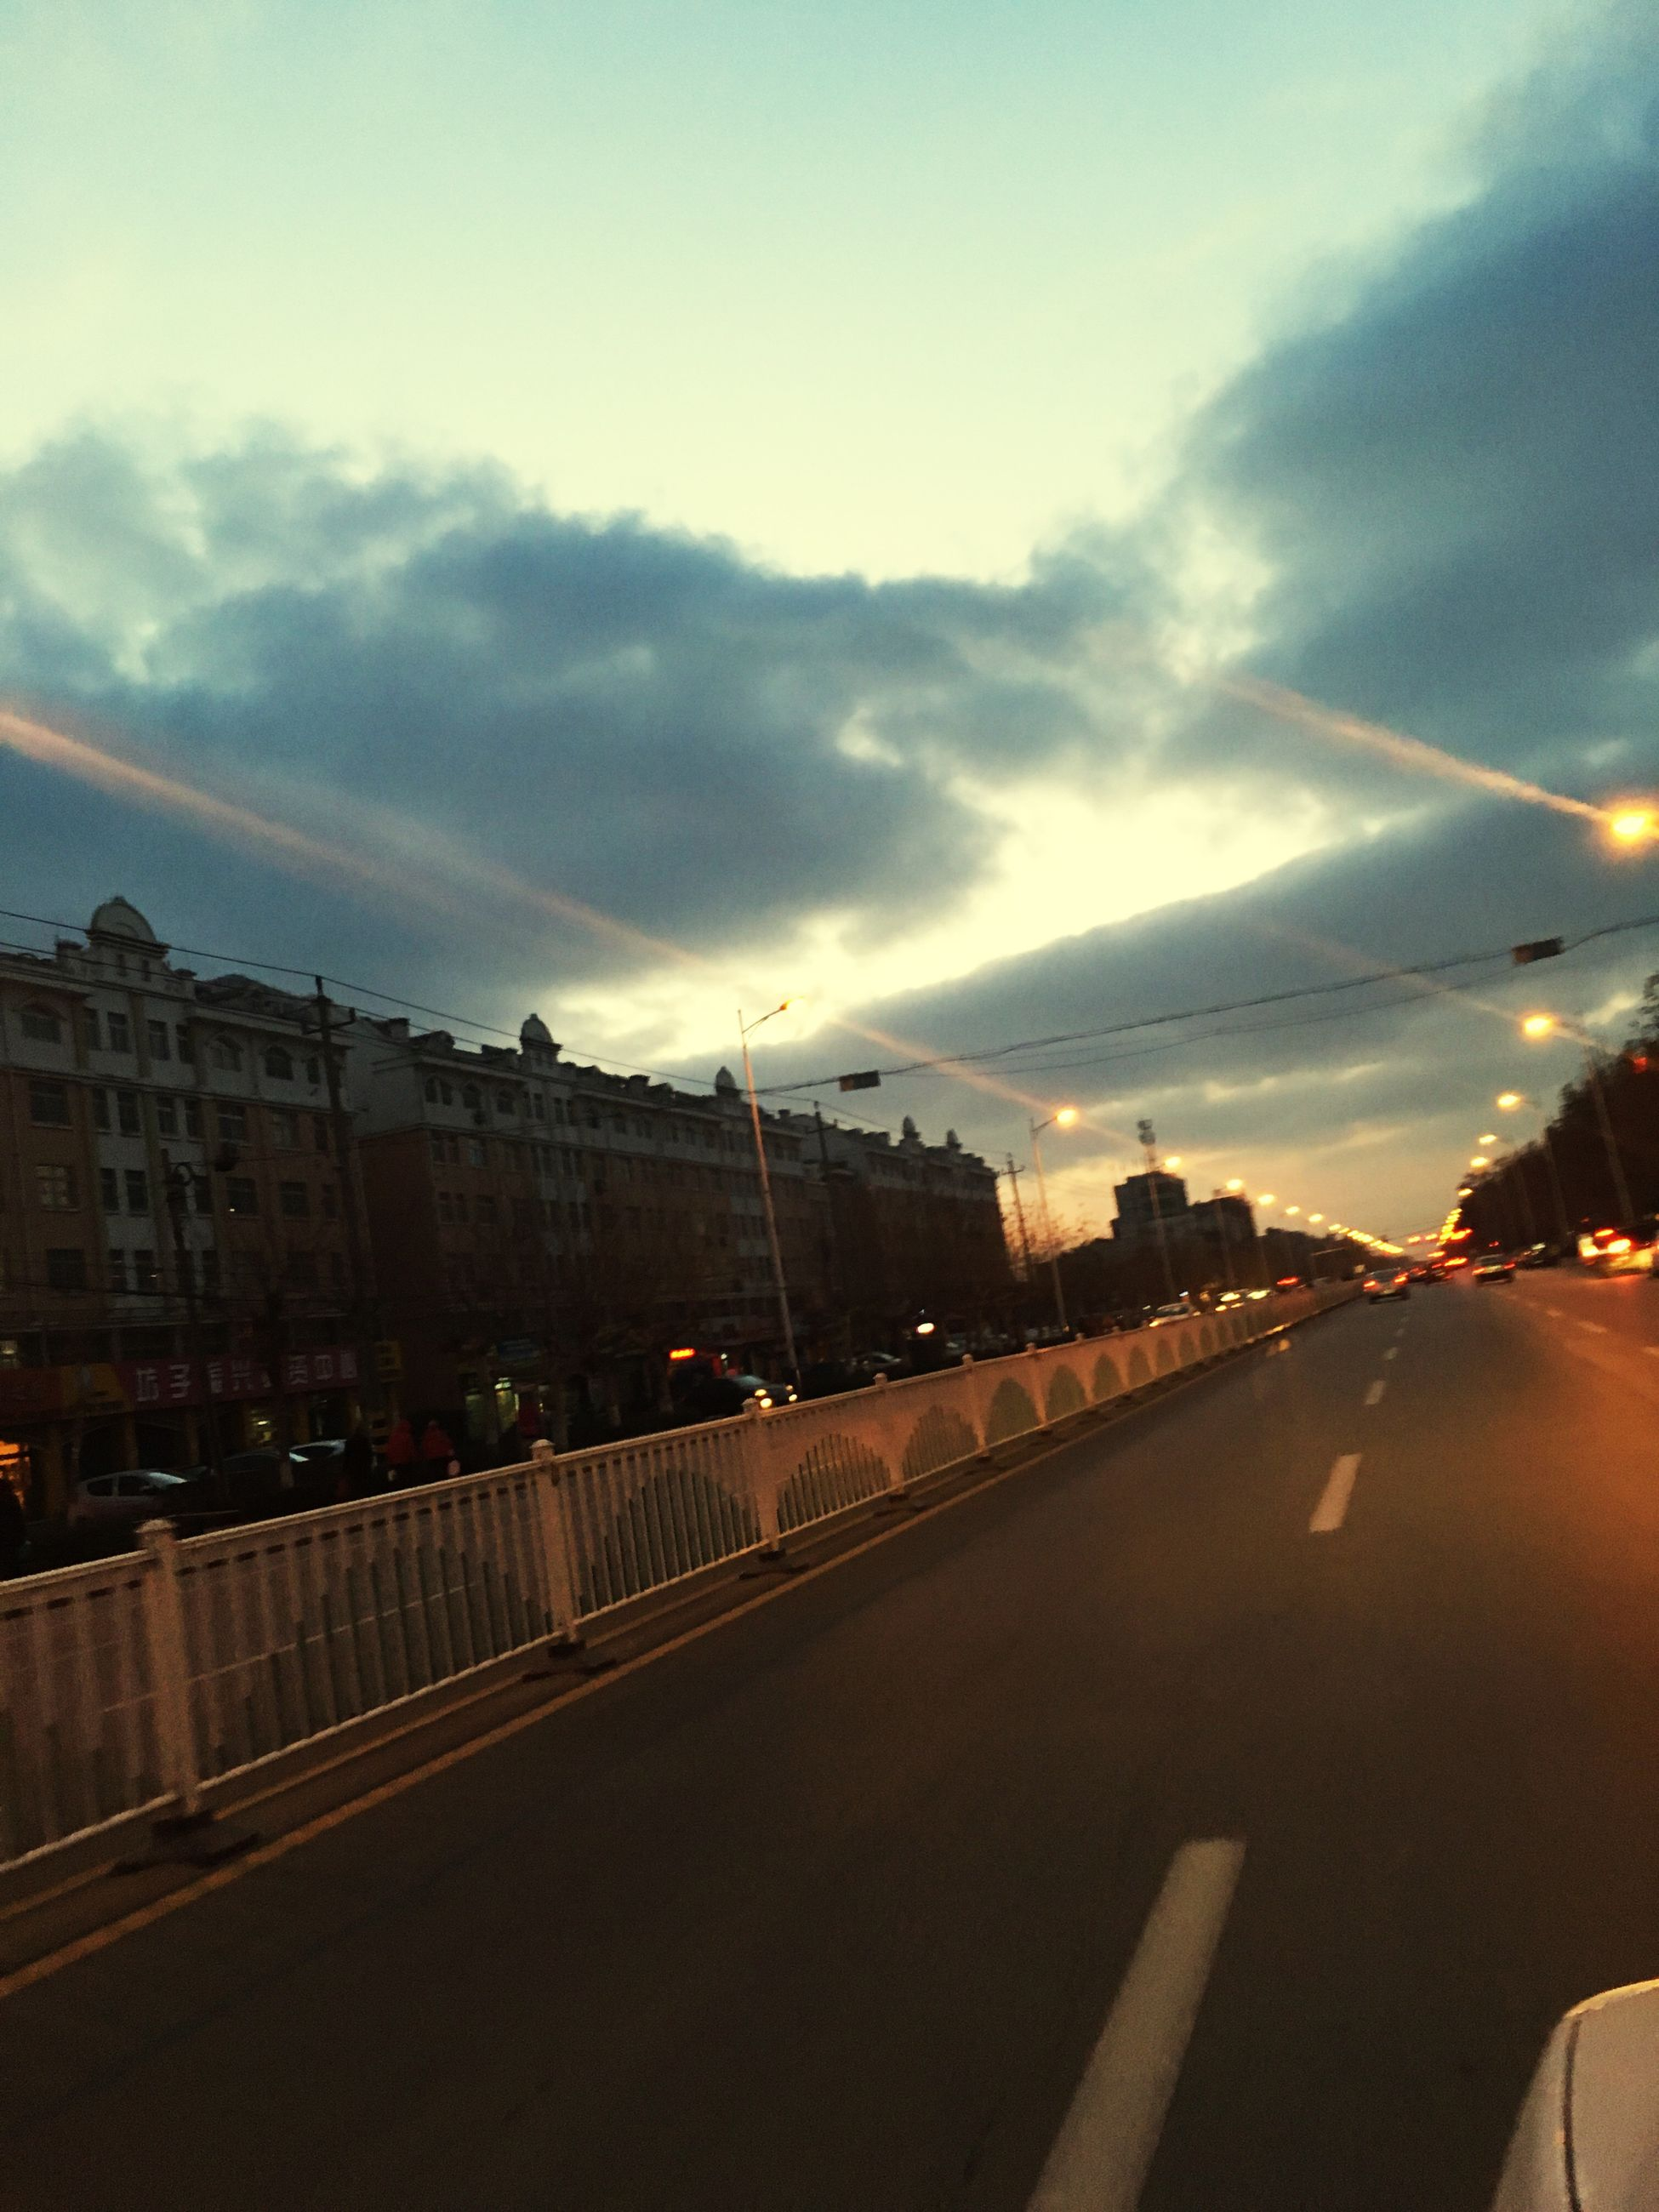 transportation, sky, road, road marking, cloud - sky, the way forward, car, building exterior, built structure, architecture, mode of transport, city, street, land vehicle, dusk, street light, diminishing perspective, on the move, city life, illuminated